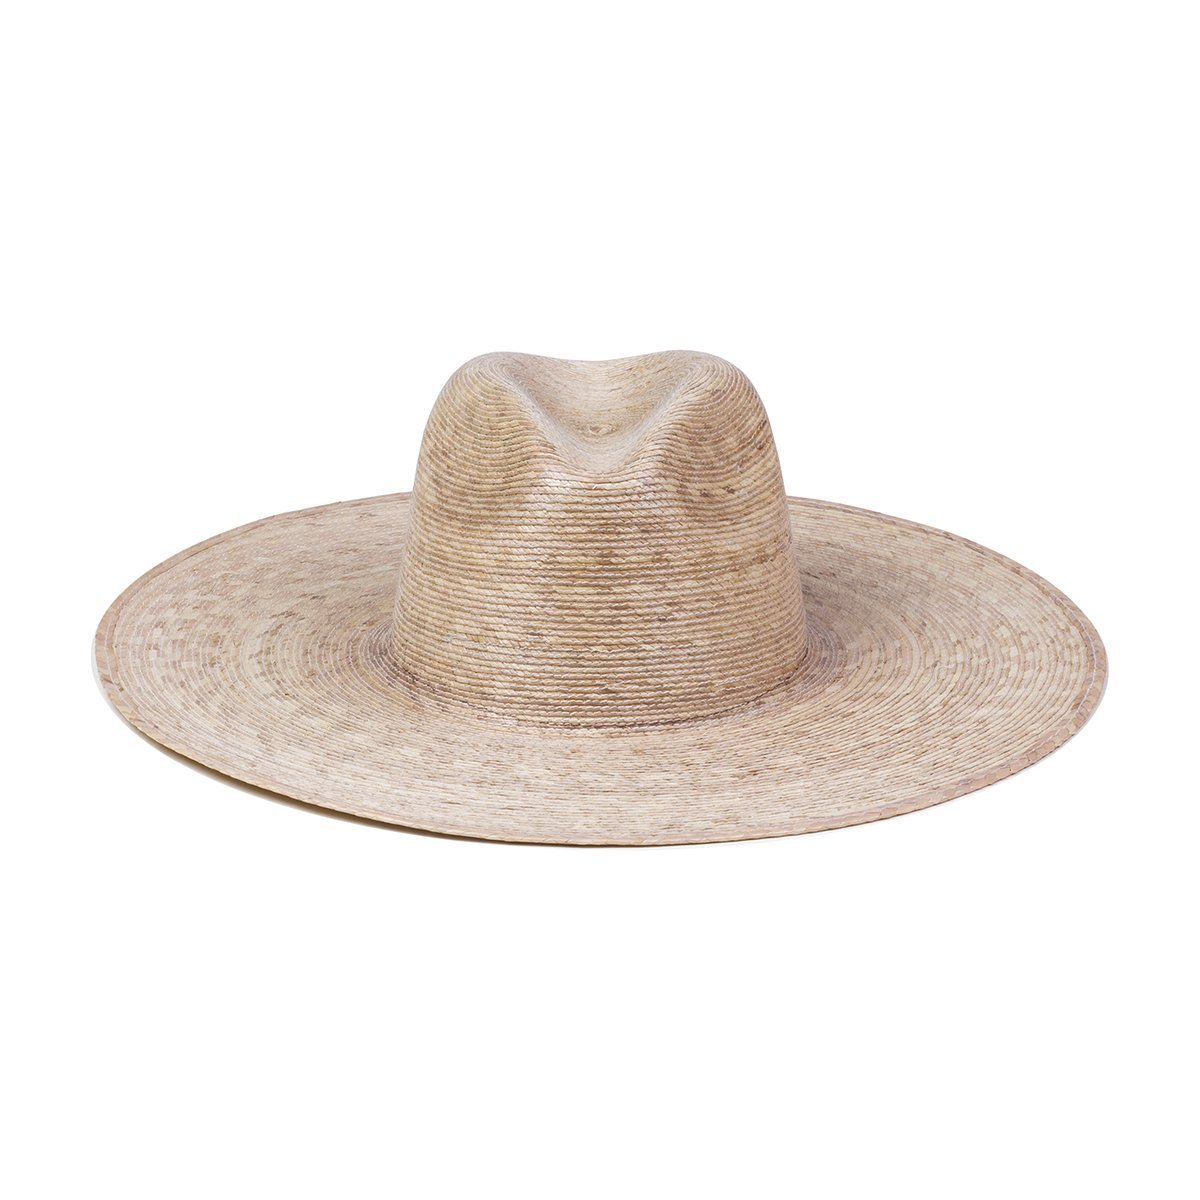 Load image into Gallery viewer, Palma Wide Fedora Hat from Lack of Color | Women's Straw Hat